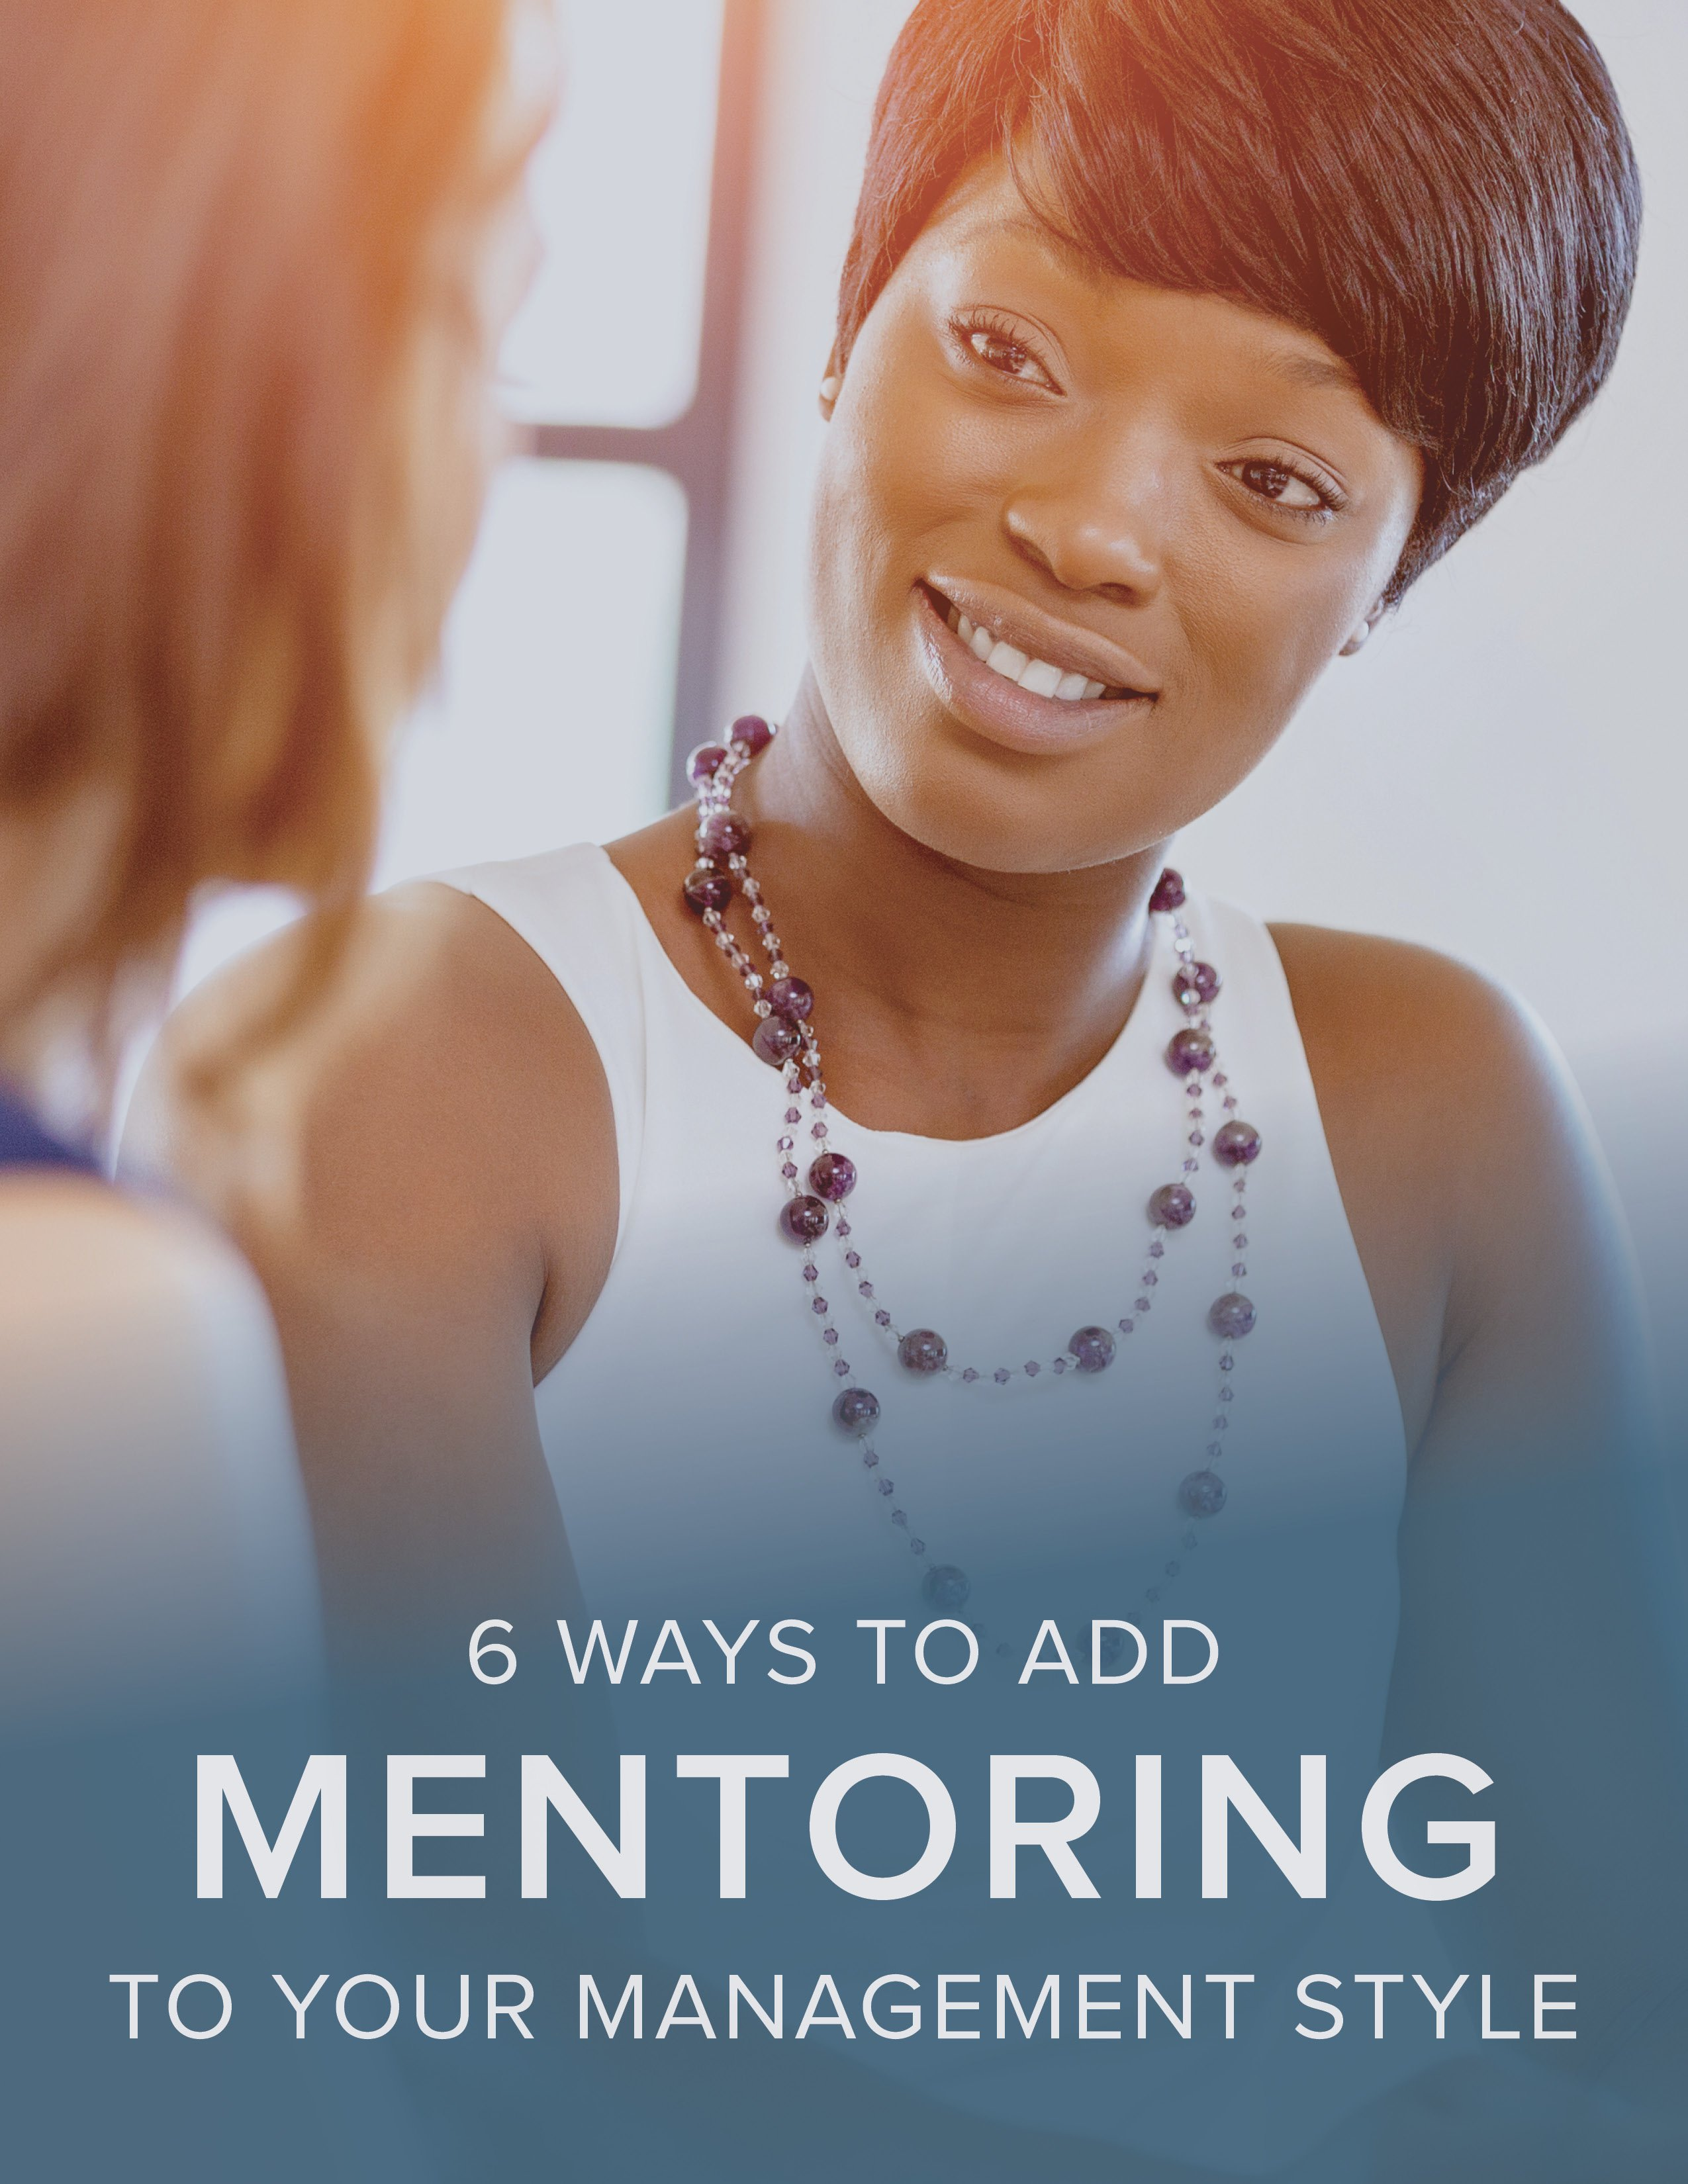 NEOGOV 6 Ways to Add Mentoring to Your Management Style